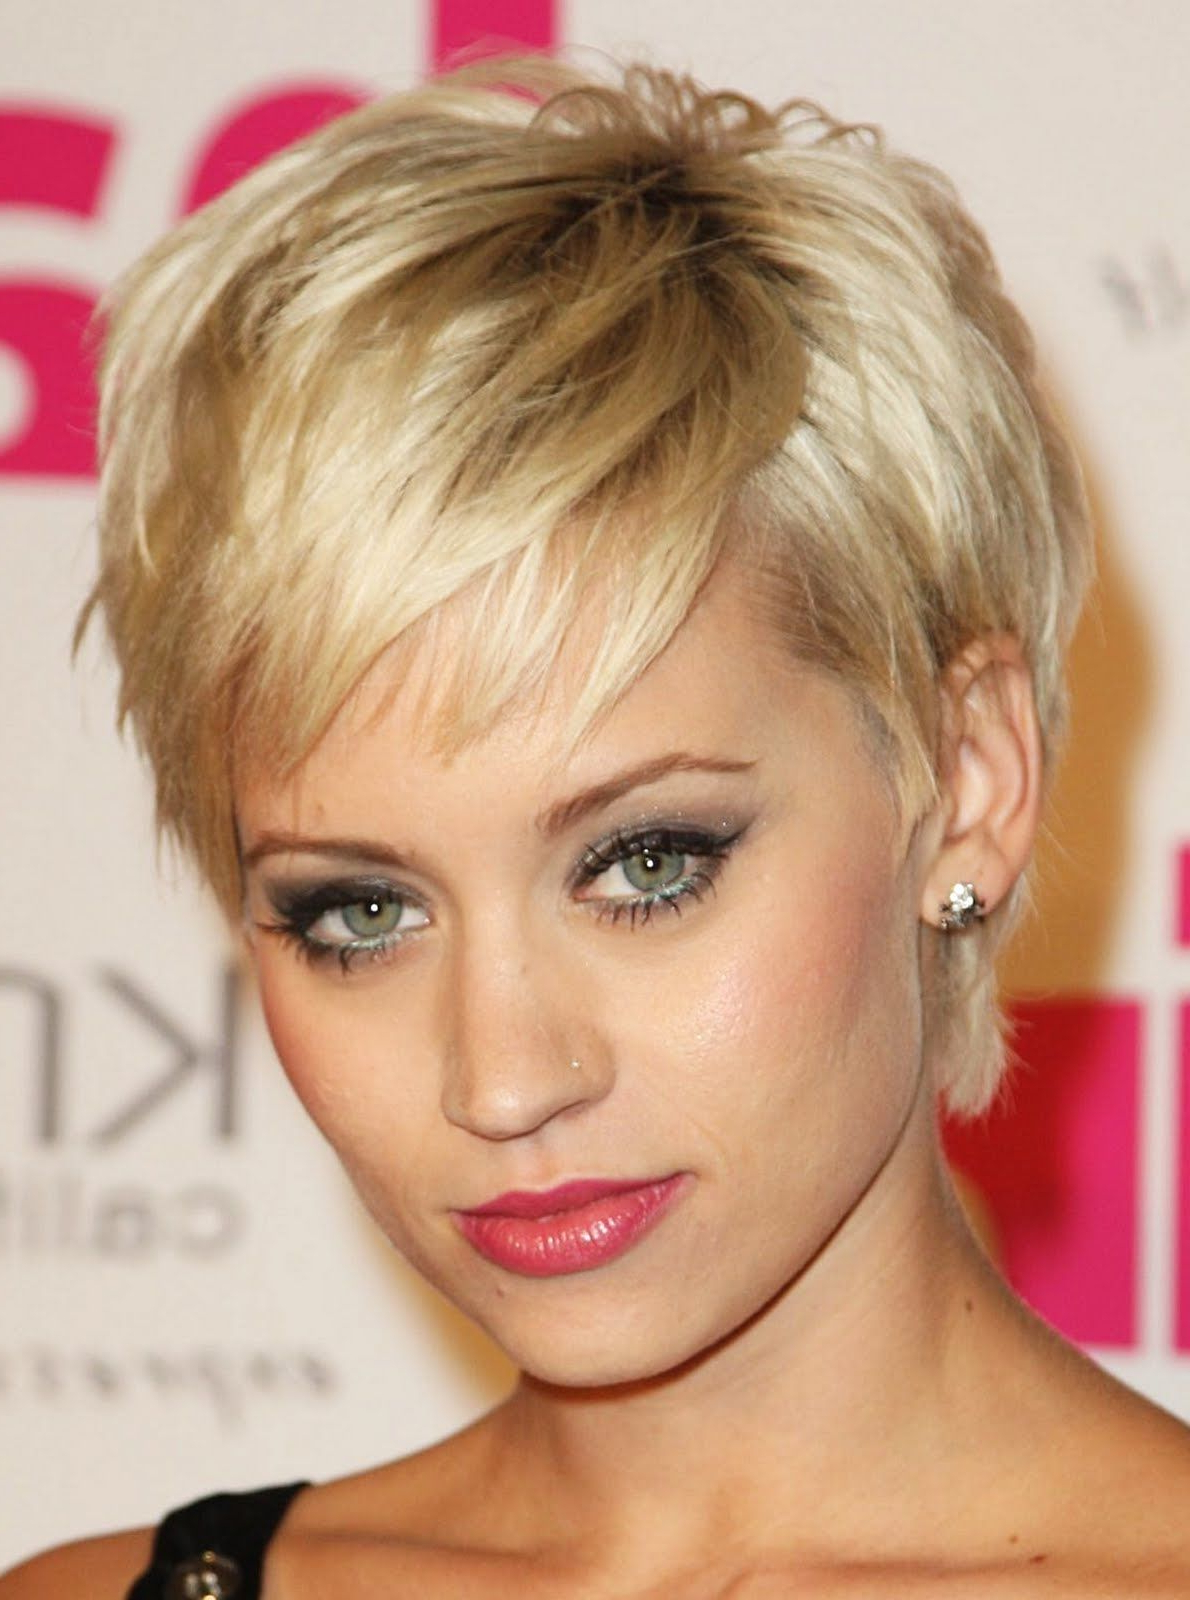 Short Hairstyles For Oval Faces (View 16 of 20)